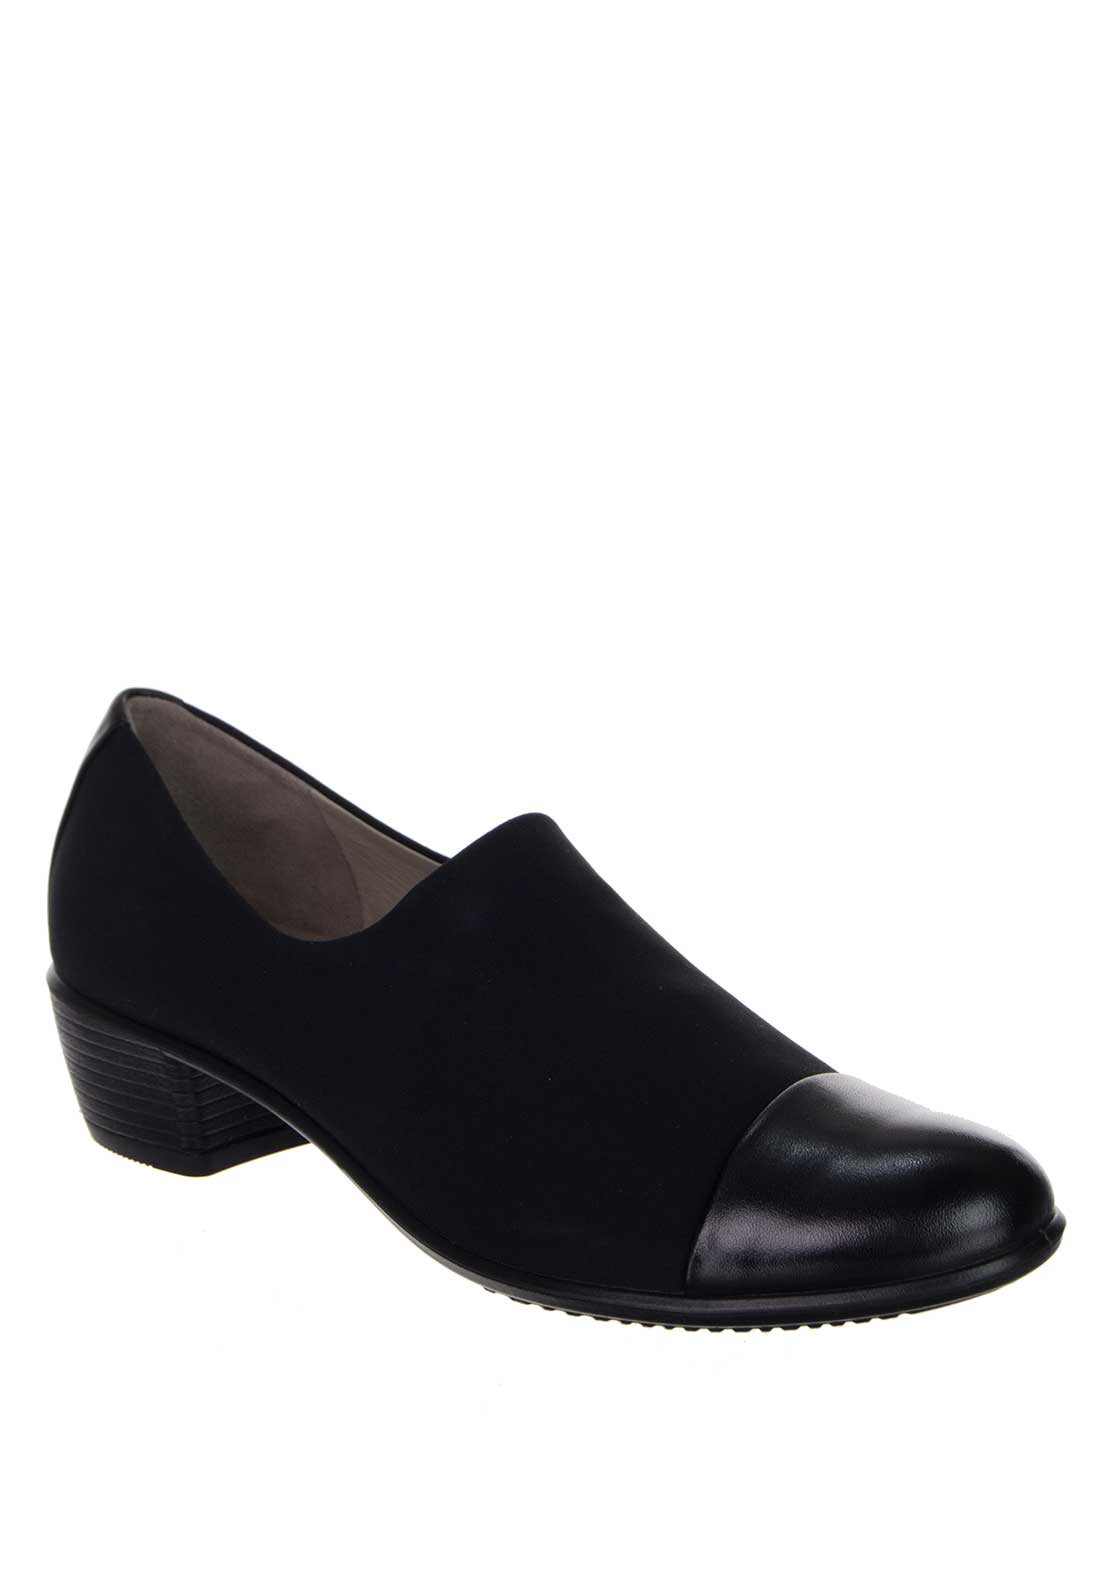 Ecco Womens Touch Leather Low Heel Shoe, Black